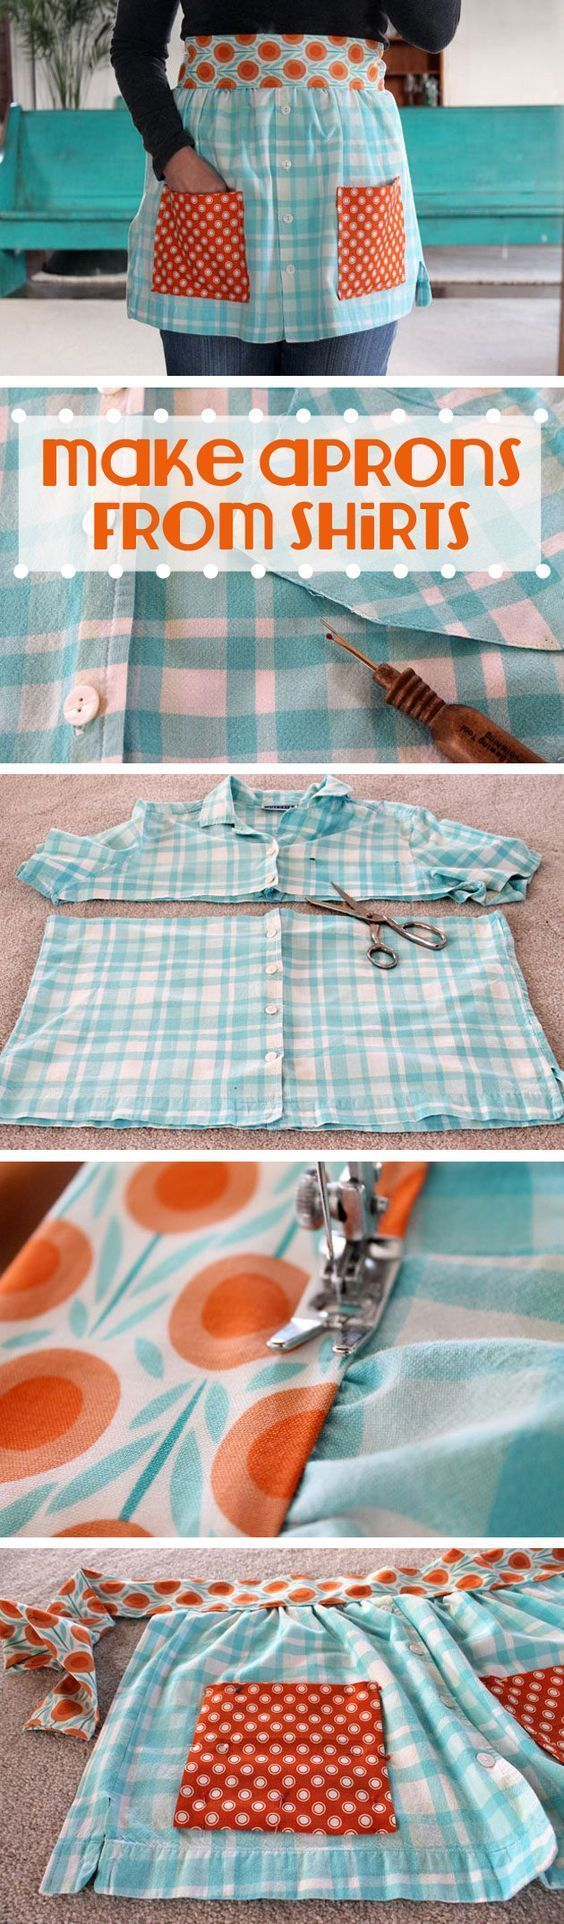 Make an adorable apron from old t-shirts! Beth Huntington has the best ideas for transforming old shirts and things into new, fashion-forward wearable items. This is great for beginner sewers or experienced ones!